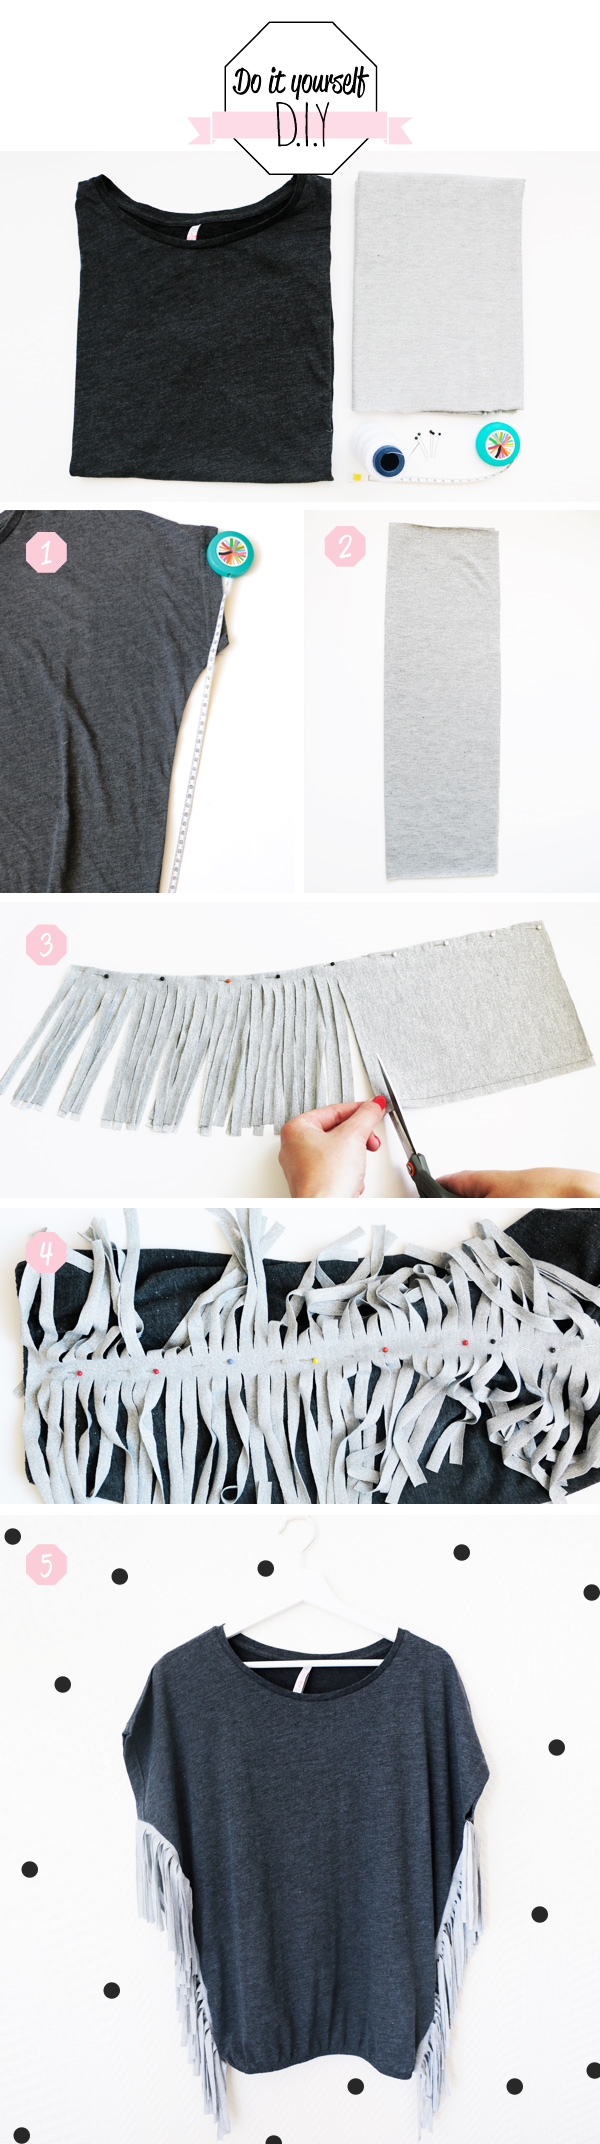 diy-t-shirt-franges